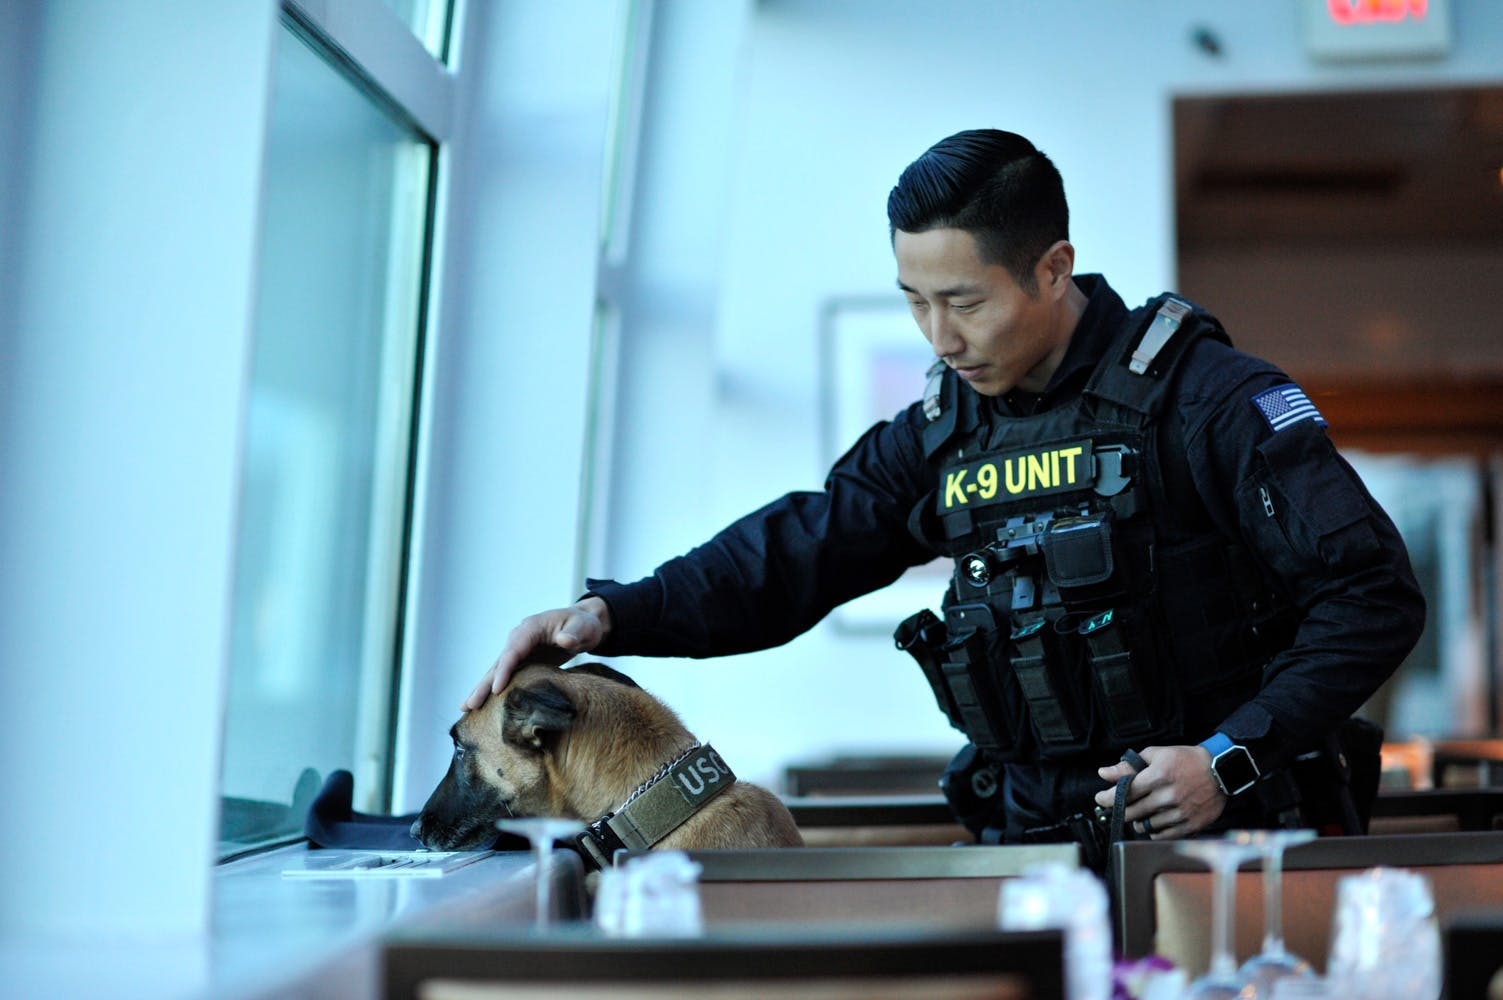 Illinois Cops Claim If Weed Is Legalized Theyll Have To Kill Their Police Dogs 2 For The First Time, Thailand Seriously Considers Legalizing Medical Marijuana